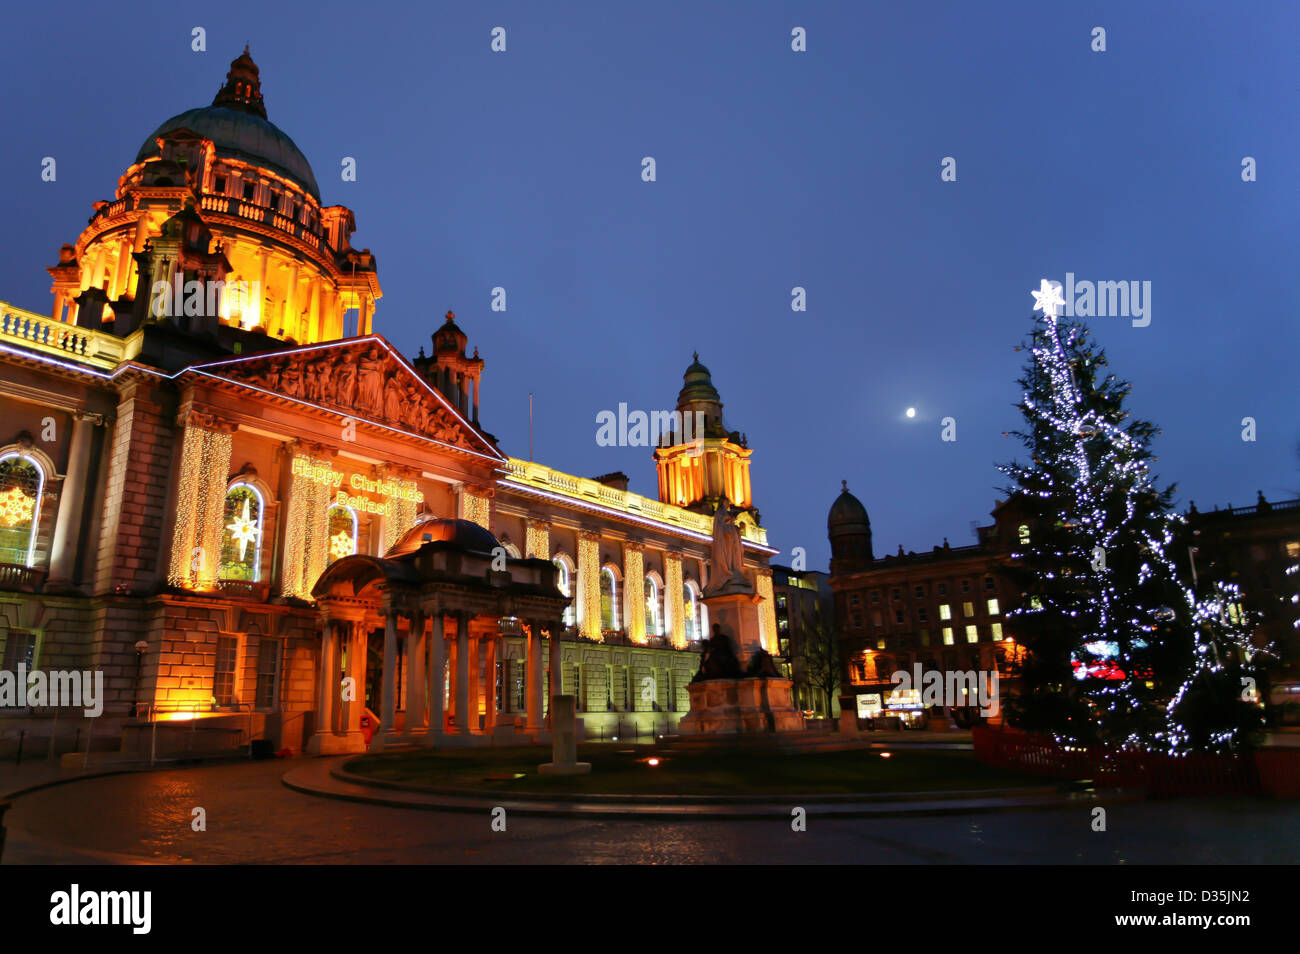 2nd January 2012, Belfast City Hall adorned with Christmas decorations,moon rise, Decorations - Stock Image